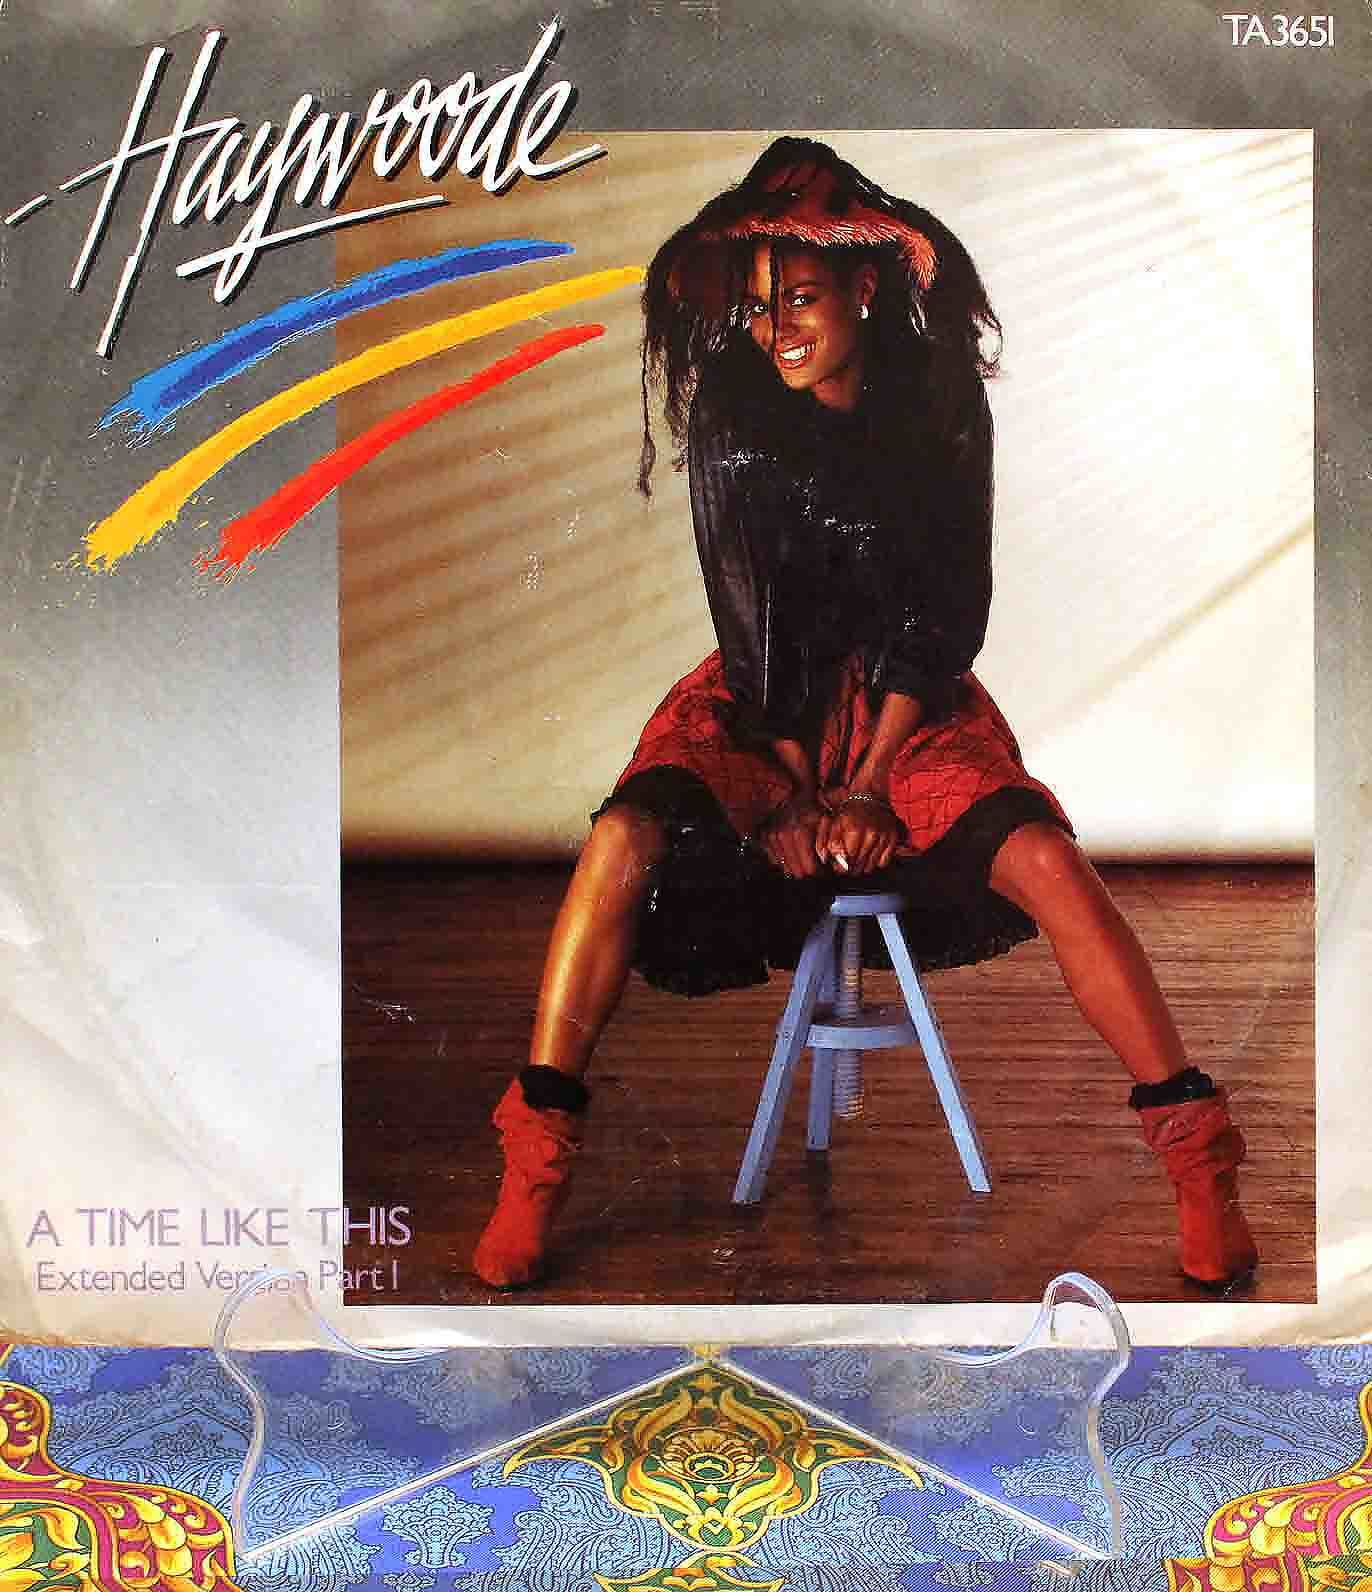 Haywoode – A Time Like This 01